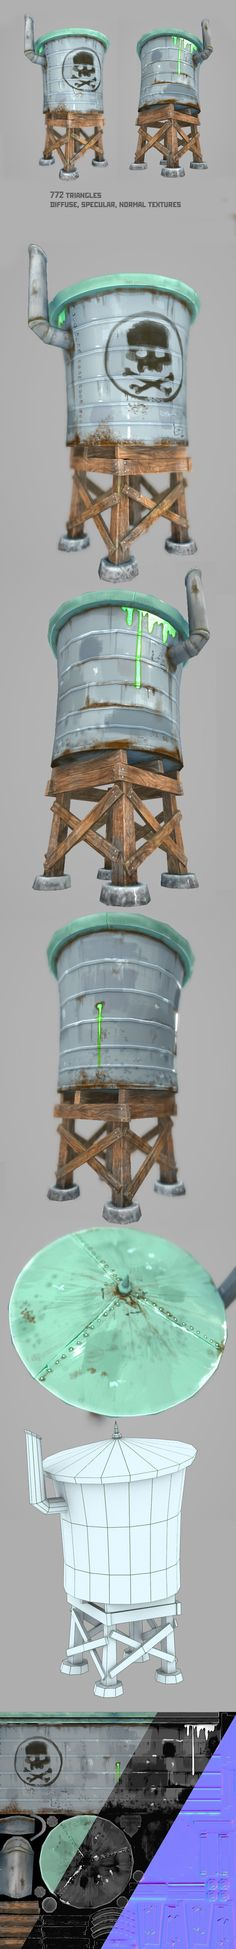 Water Tower by Denelighte Ready for game lowpoly textured model with optimazed mesh and UV Prop Design, Game Design, 3d Design, Polygon Modeling, 3d Modeling, Low Poly Games, Game Textures, Hand Painted Textures, Drawn Art